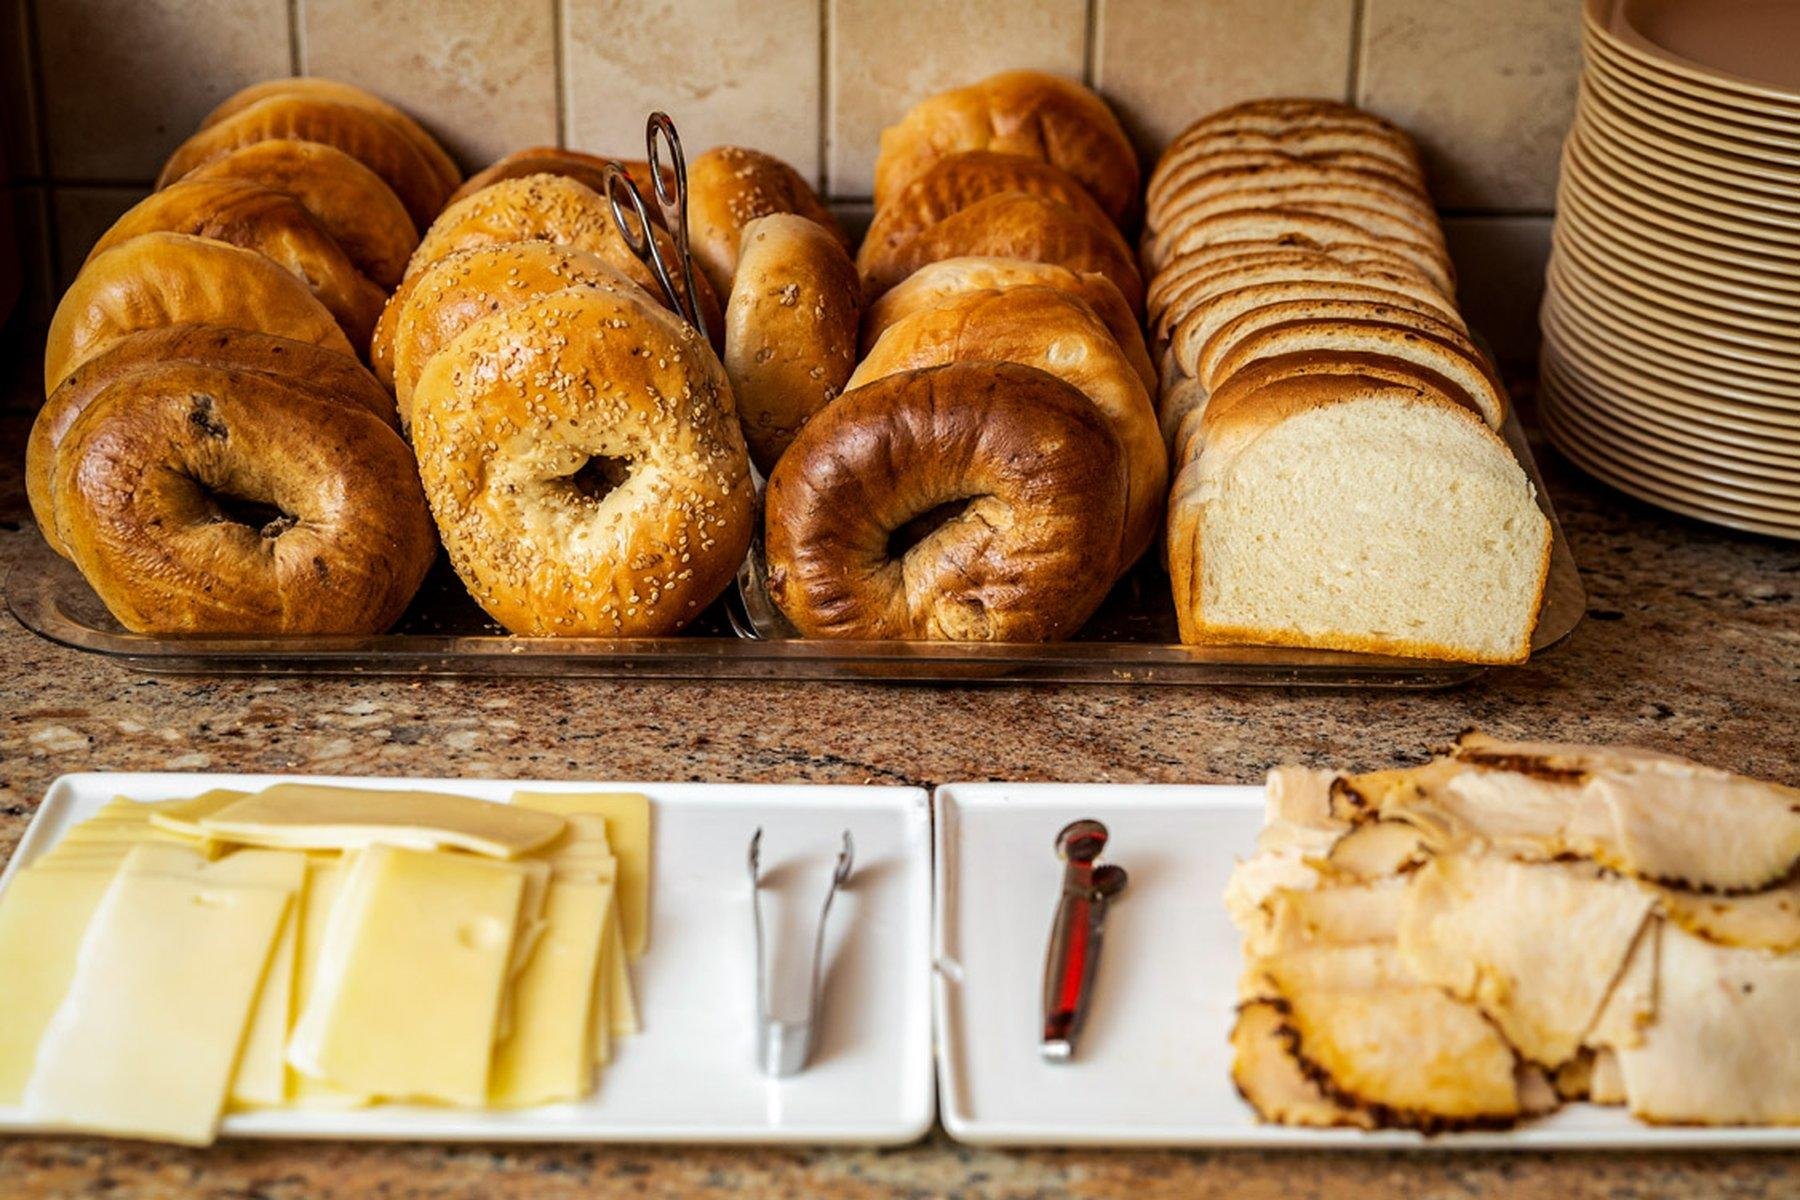 Assortment of bagels and cheese.